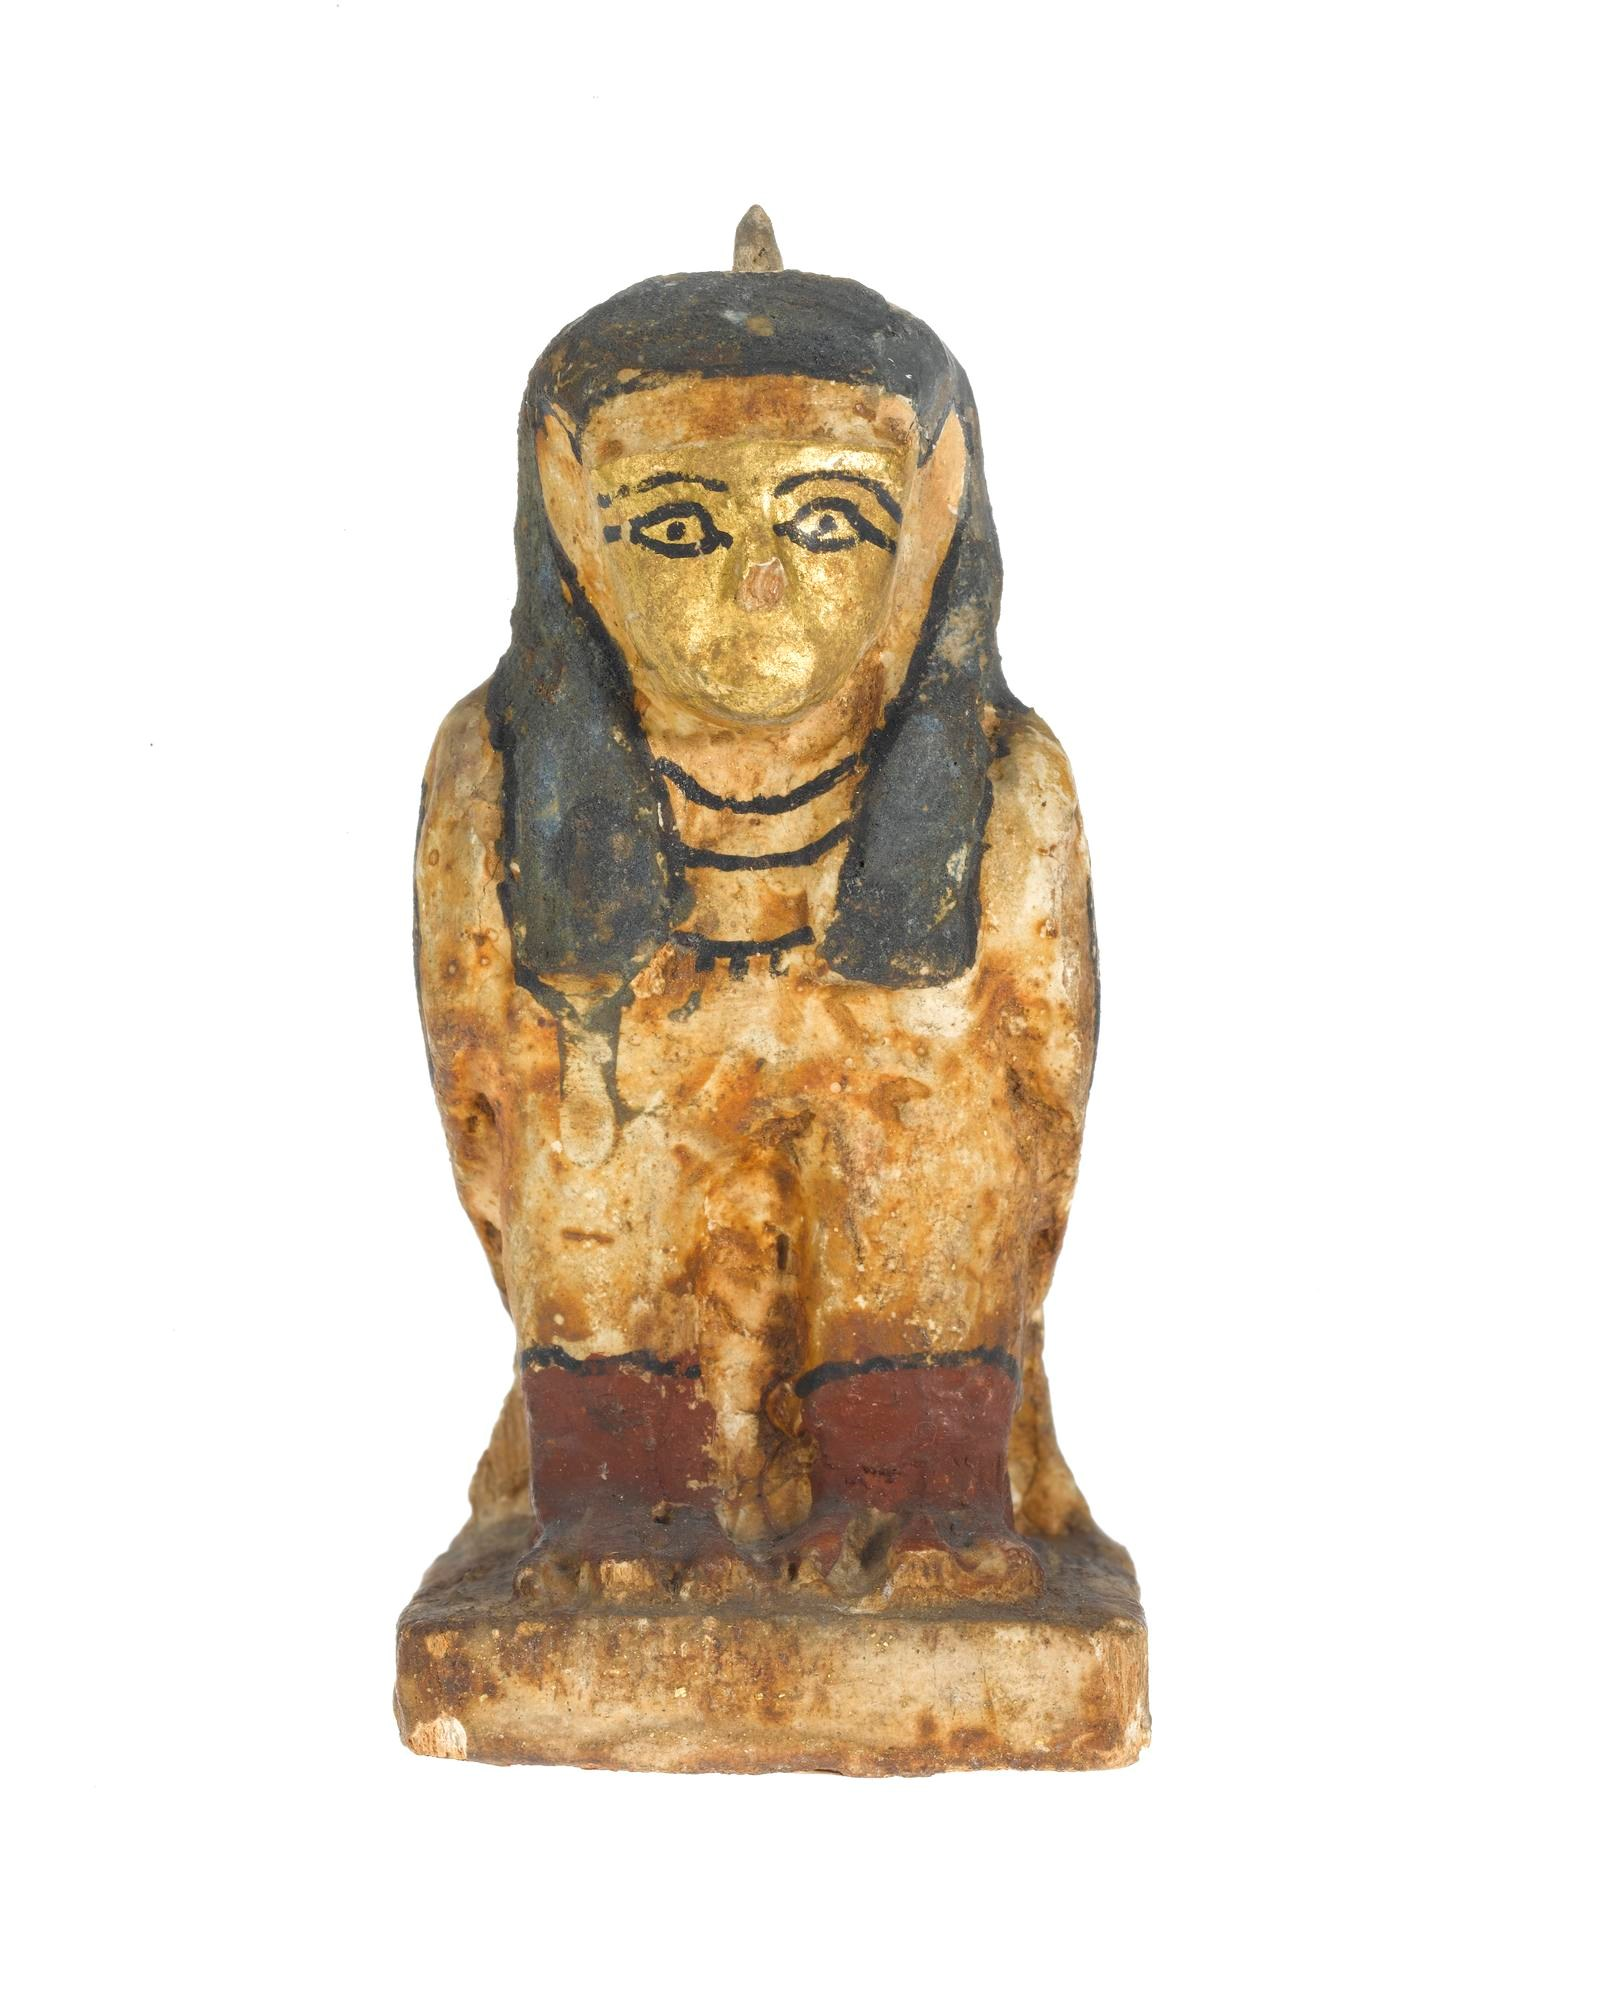 Painted wooden statuette of a ba-bird, with the body in the form of a falcon and the head in human form: Ancient Egyptian, probably from Akhmim, Late Period.